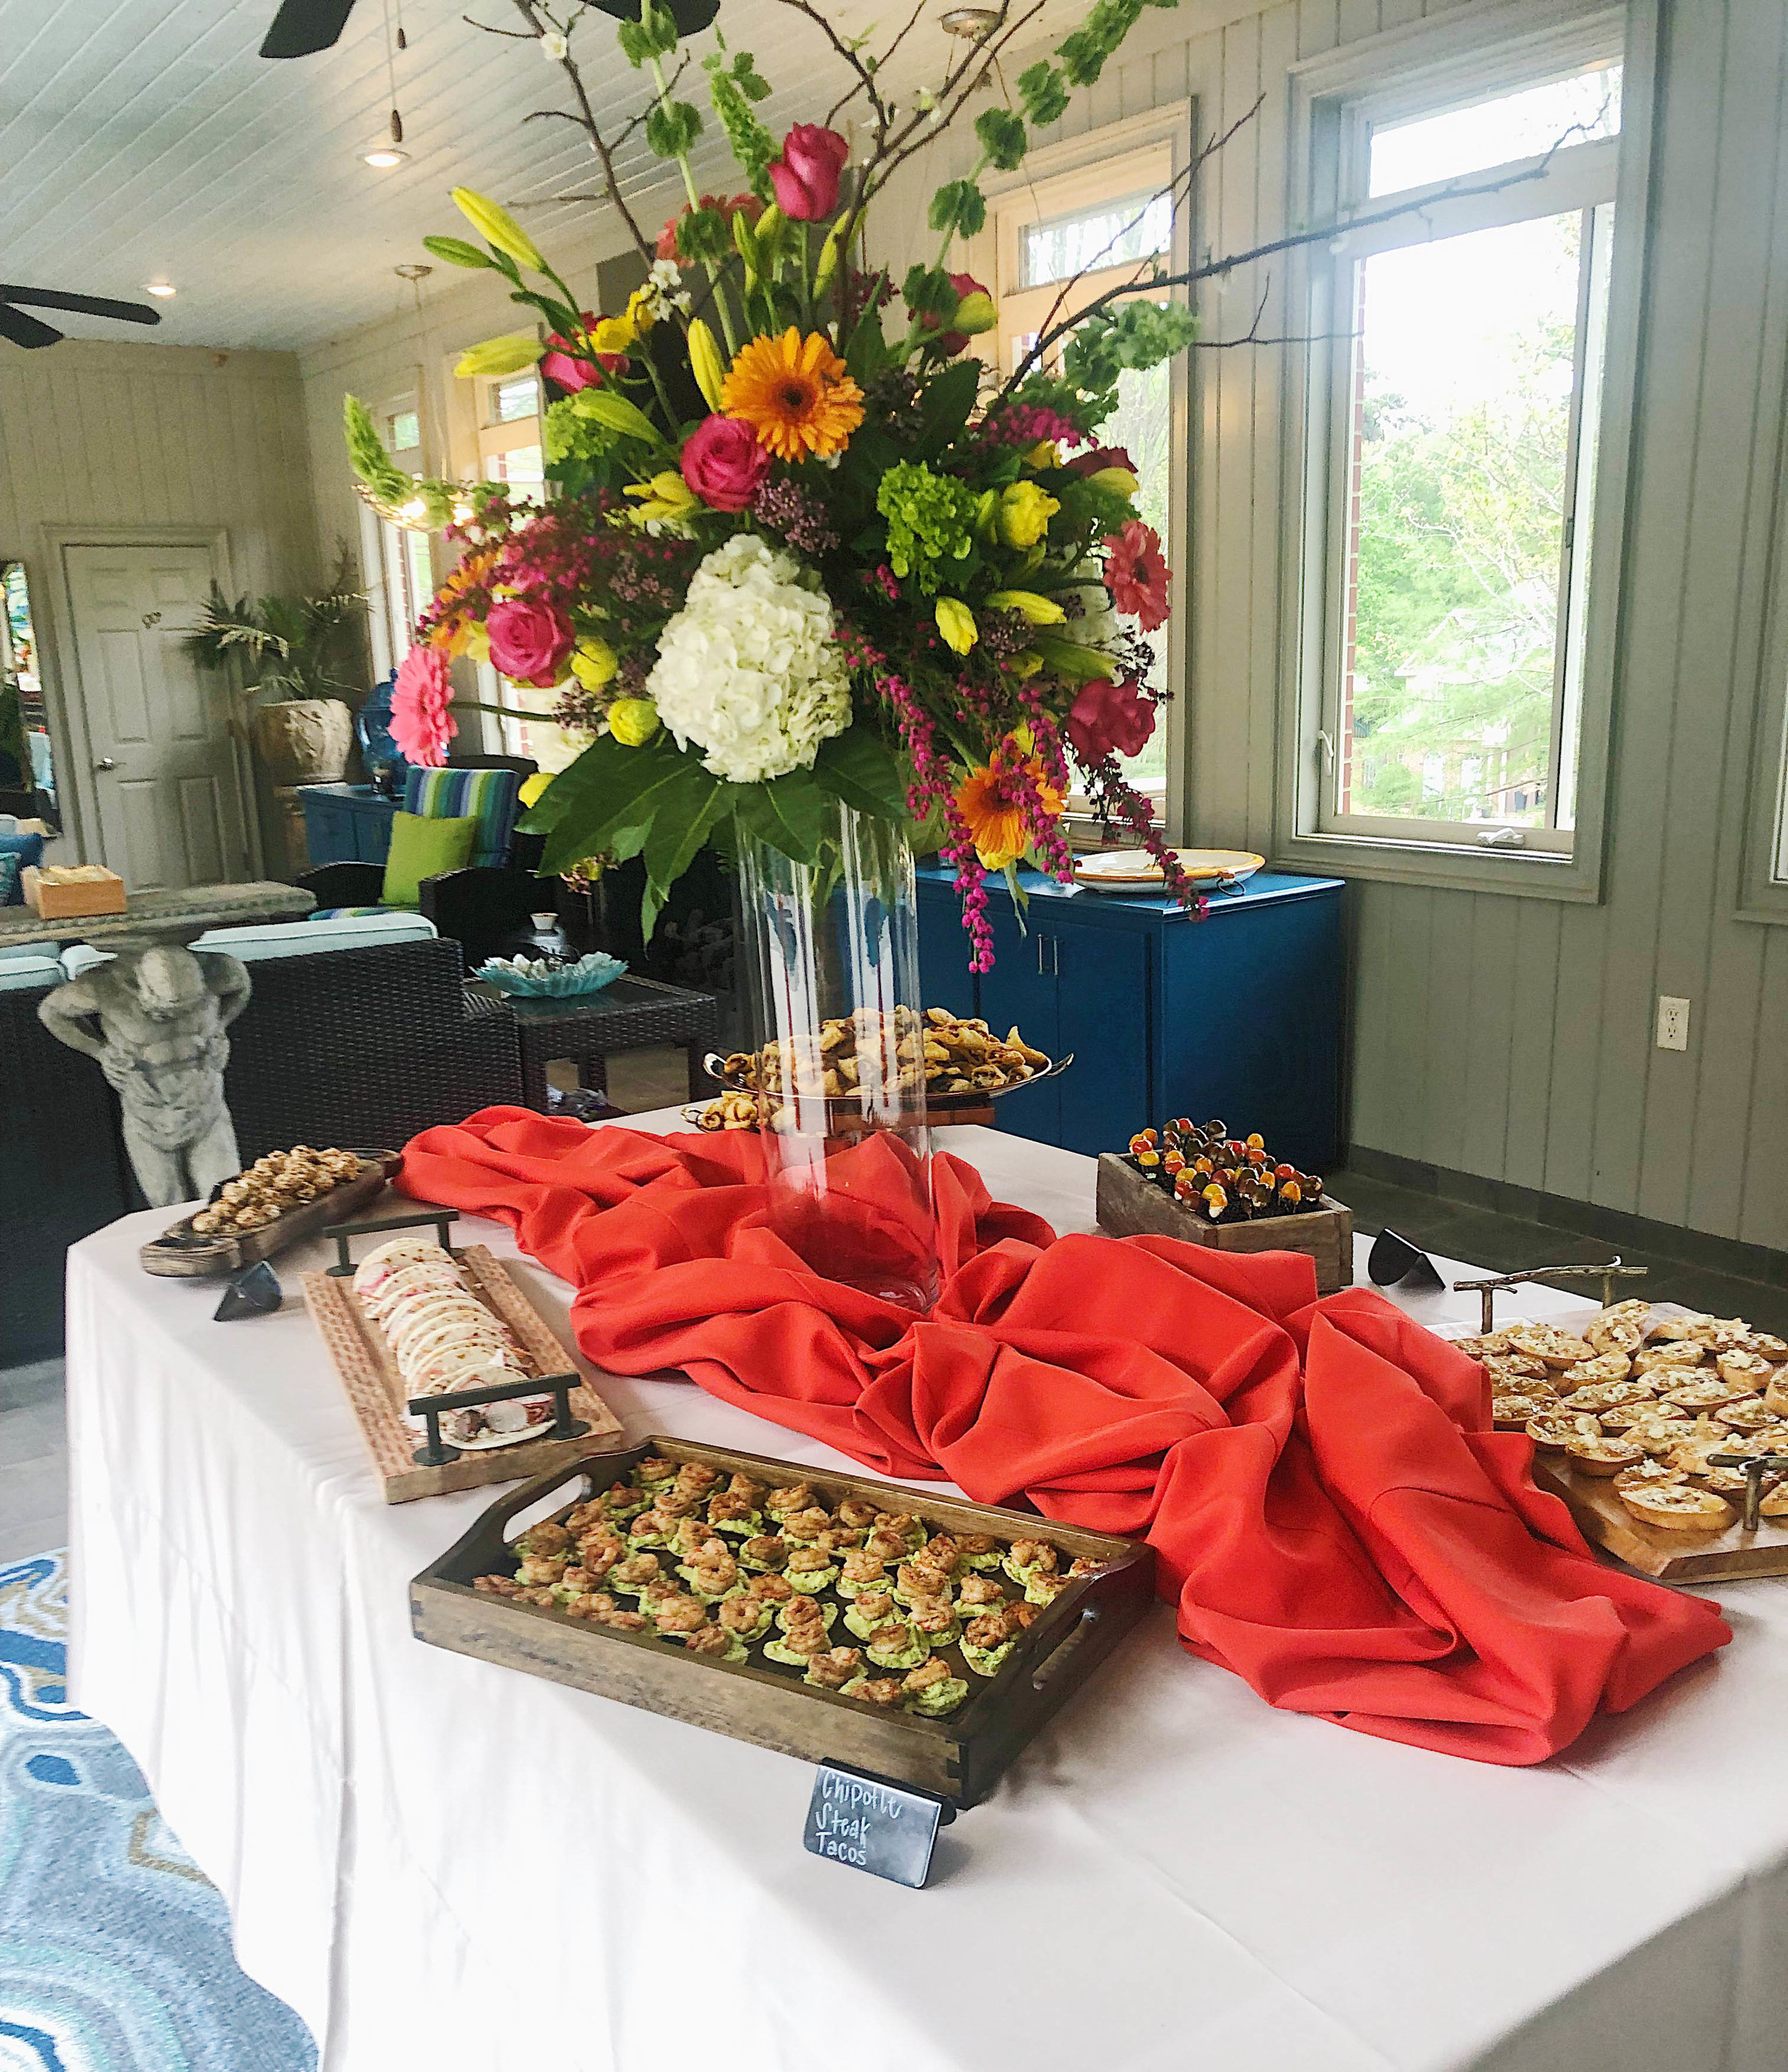 Caprese bites, mini shrimp guacamole tostadas, cream cheese pecan olives, and chipotle steak tacos were the menu items during an event Marjorie catered at Sonja Hubbard's home.